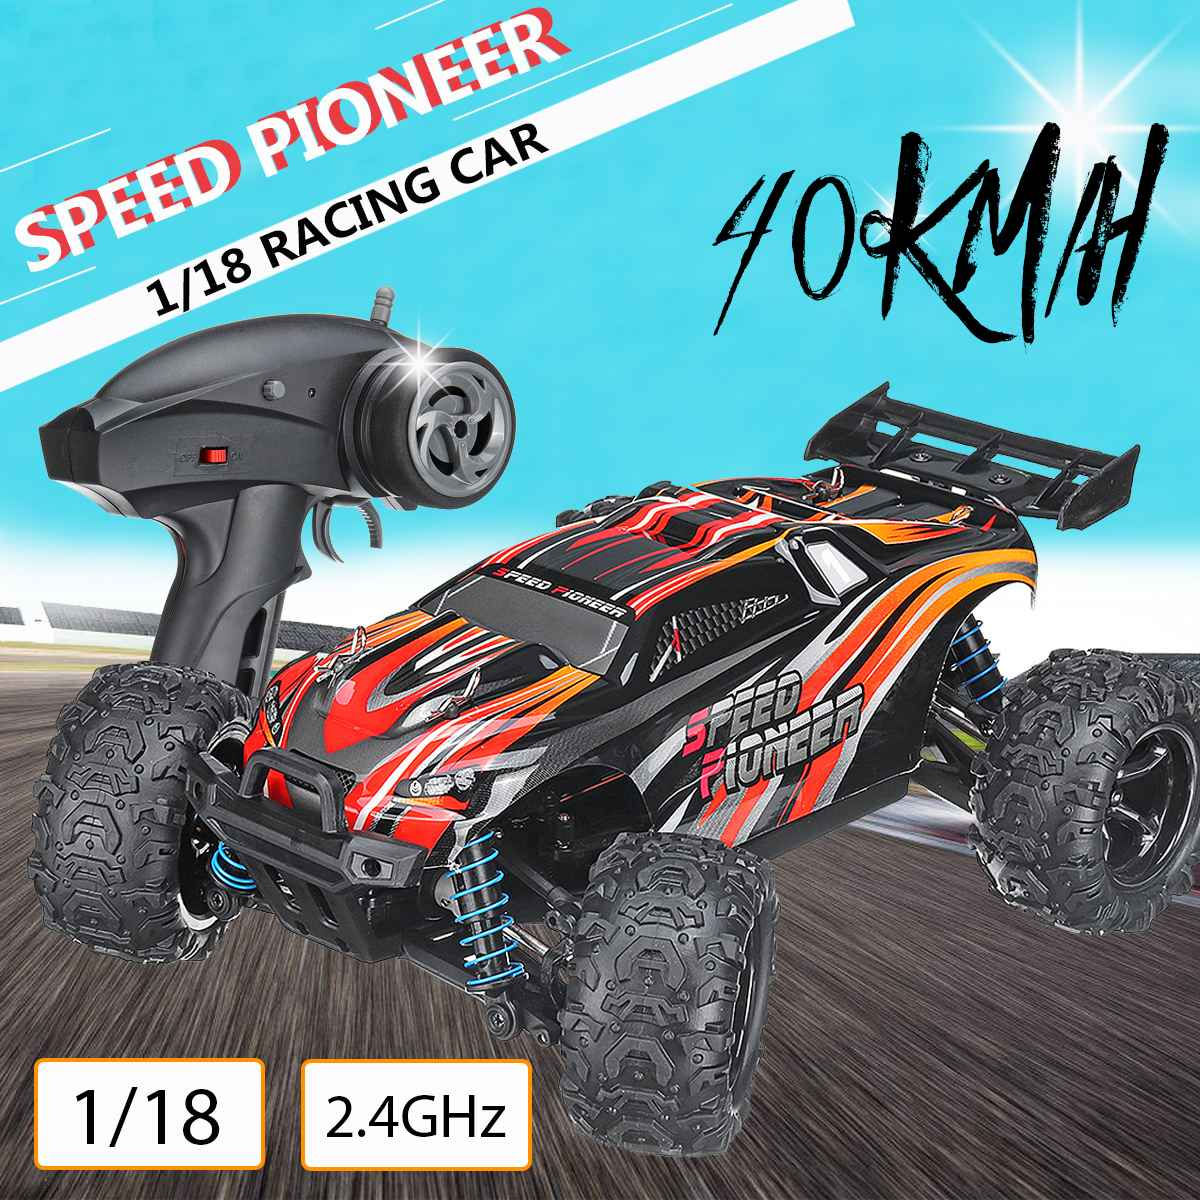 RC Car 40KM/H 2.4ghz 1:18 4WD Remote Control High Speed Truck Electric Truck OffRoad Vehicle 4x4 Driving Car Vehicle ToyRC Car 40KM/H 2.4ghz 1:18 4WD Remote Control High Speed Truck Electric Truck OffRoad Vehicle 4x4 Driving Car Vehicle Toy